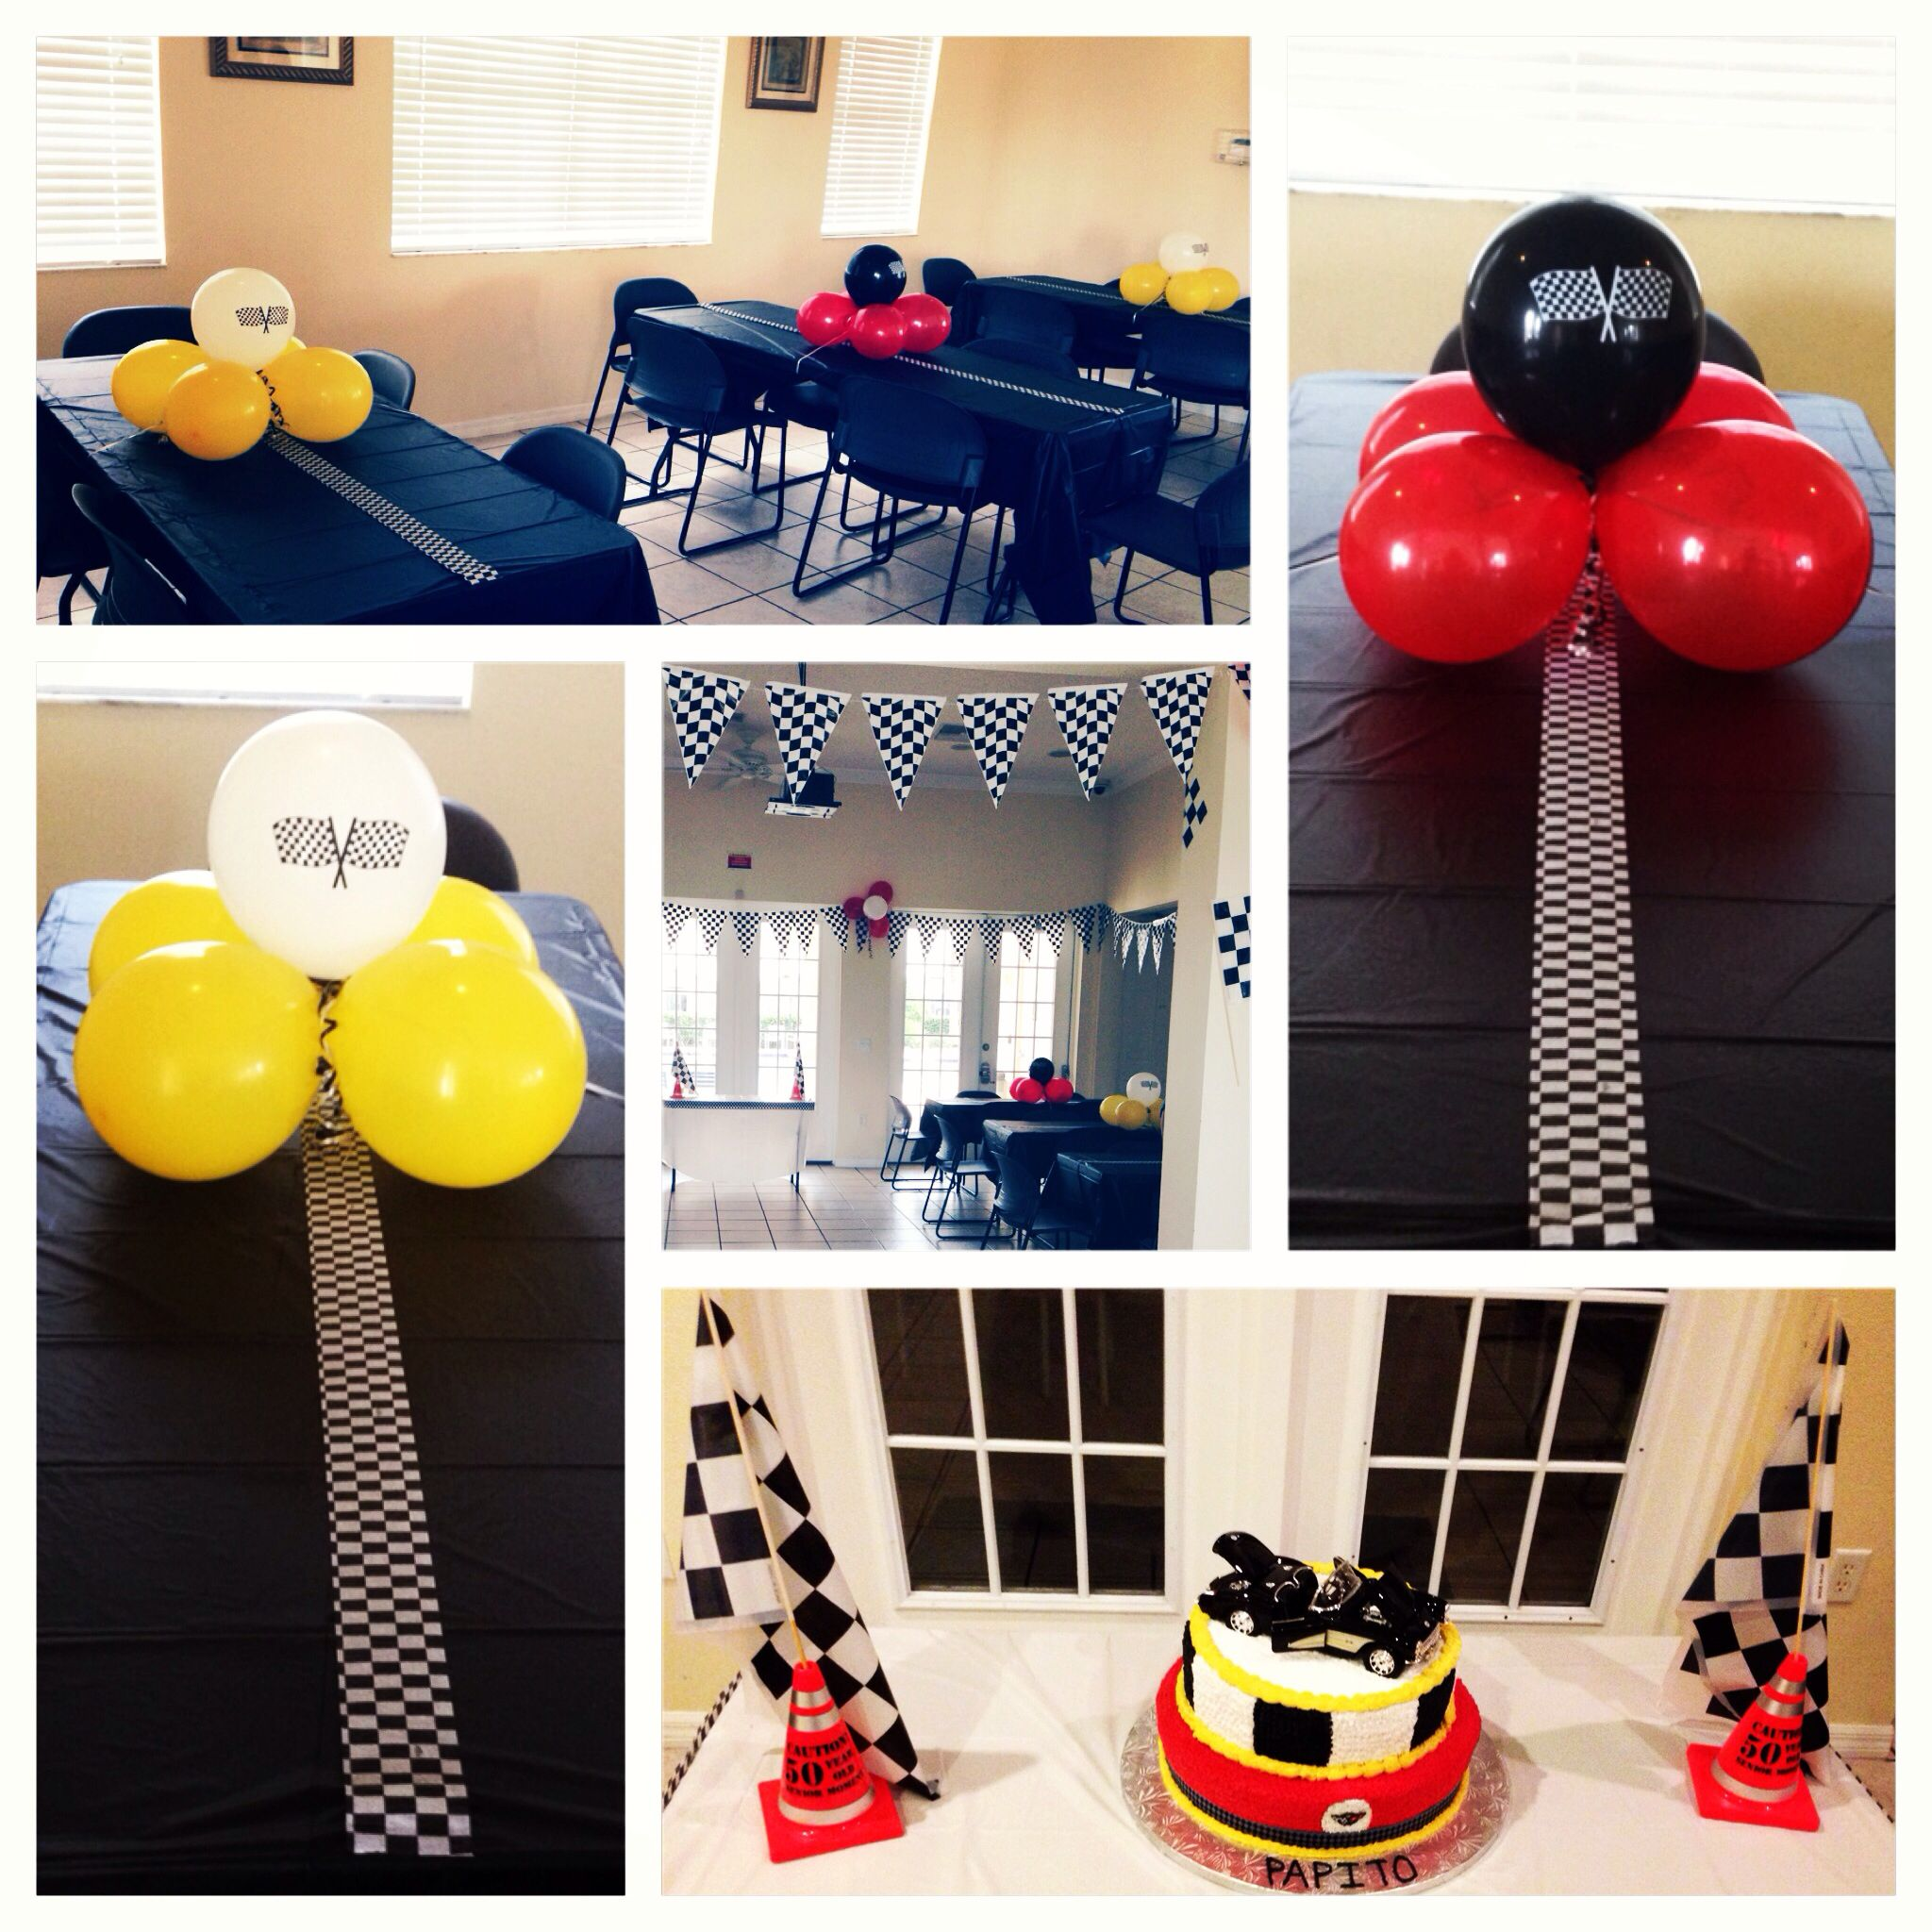 Corvette birthday party DIY centerpieces 50th birthday Random